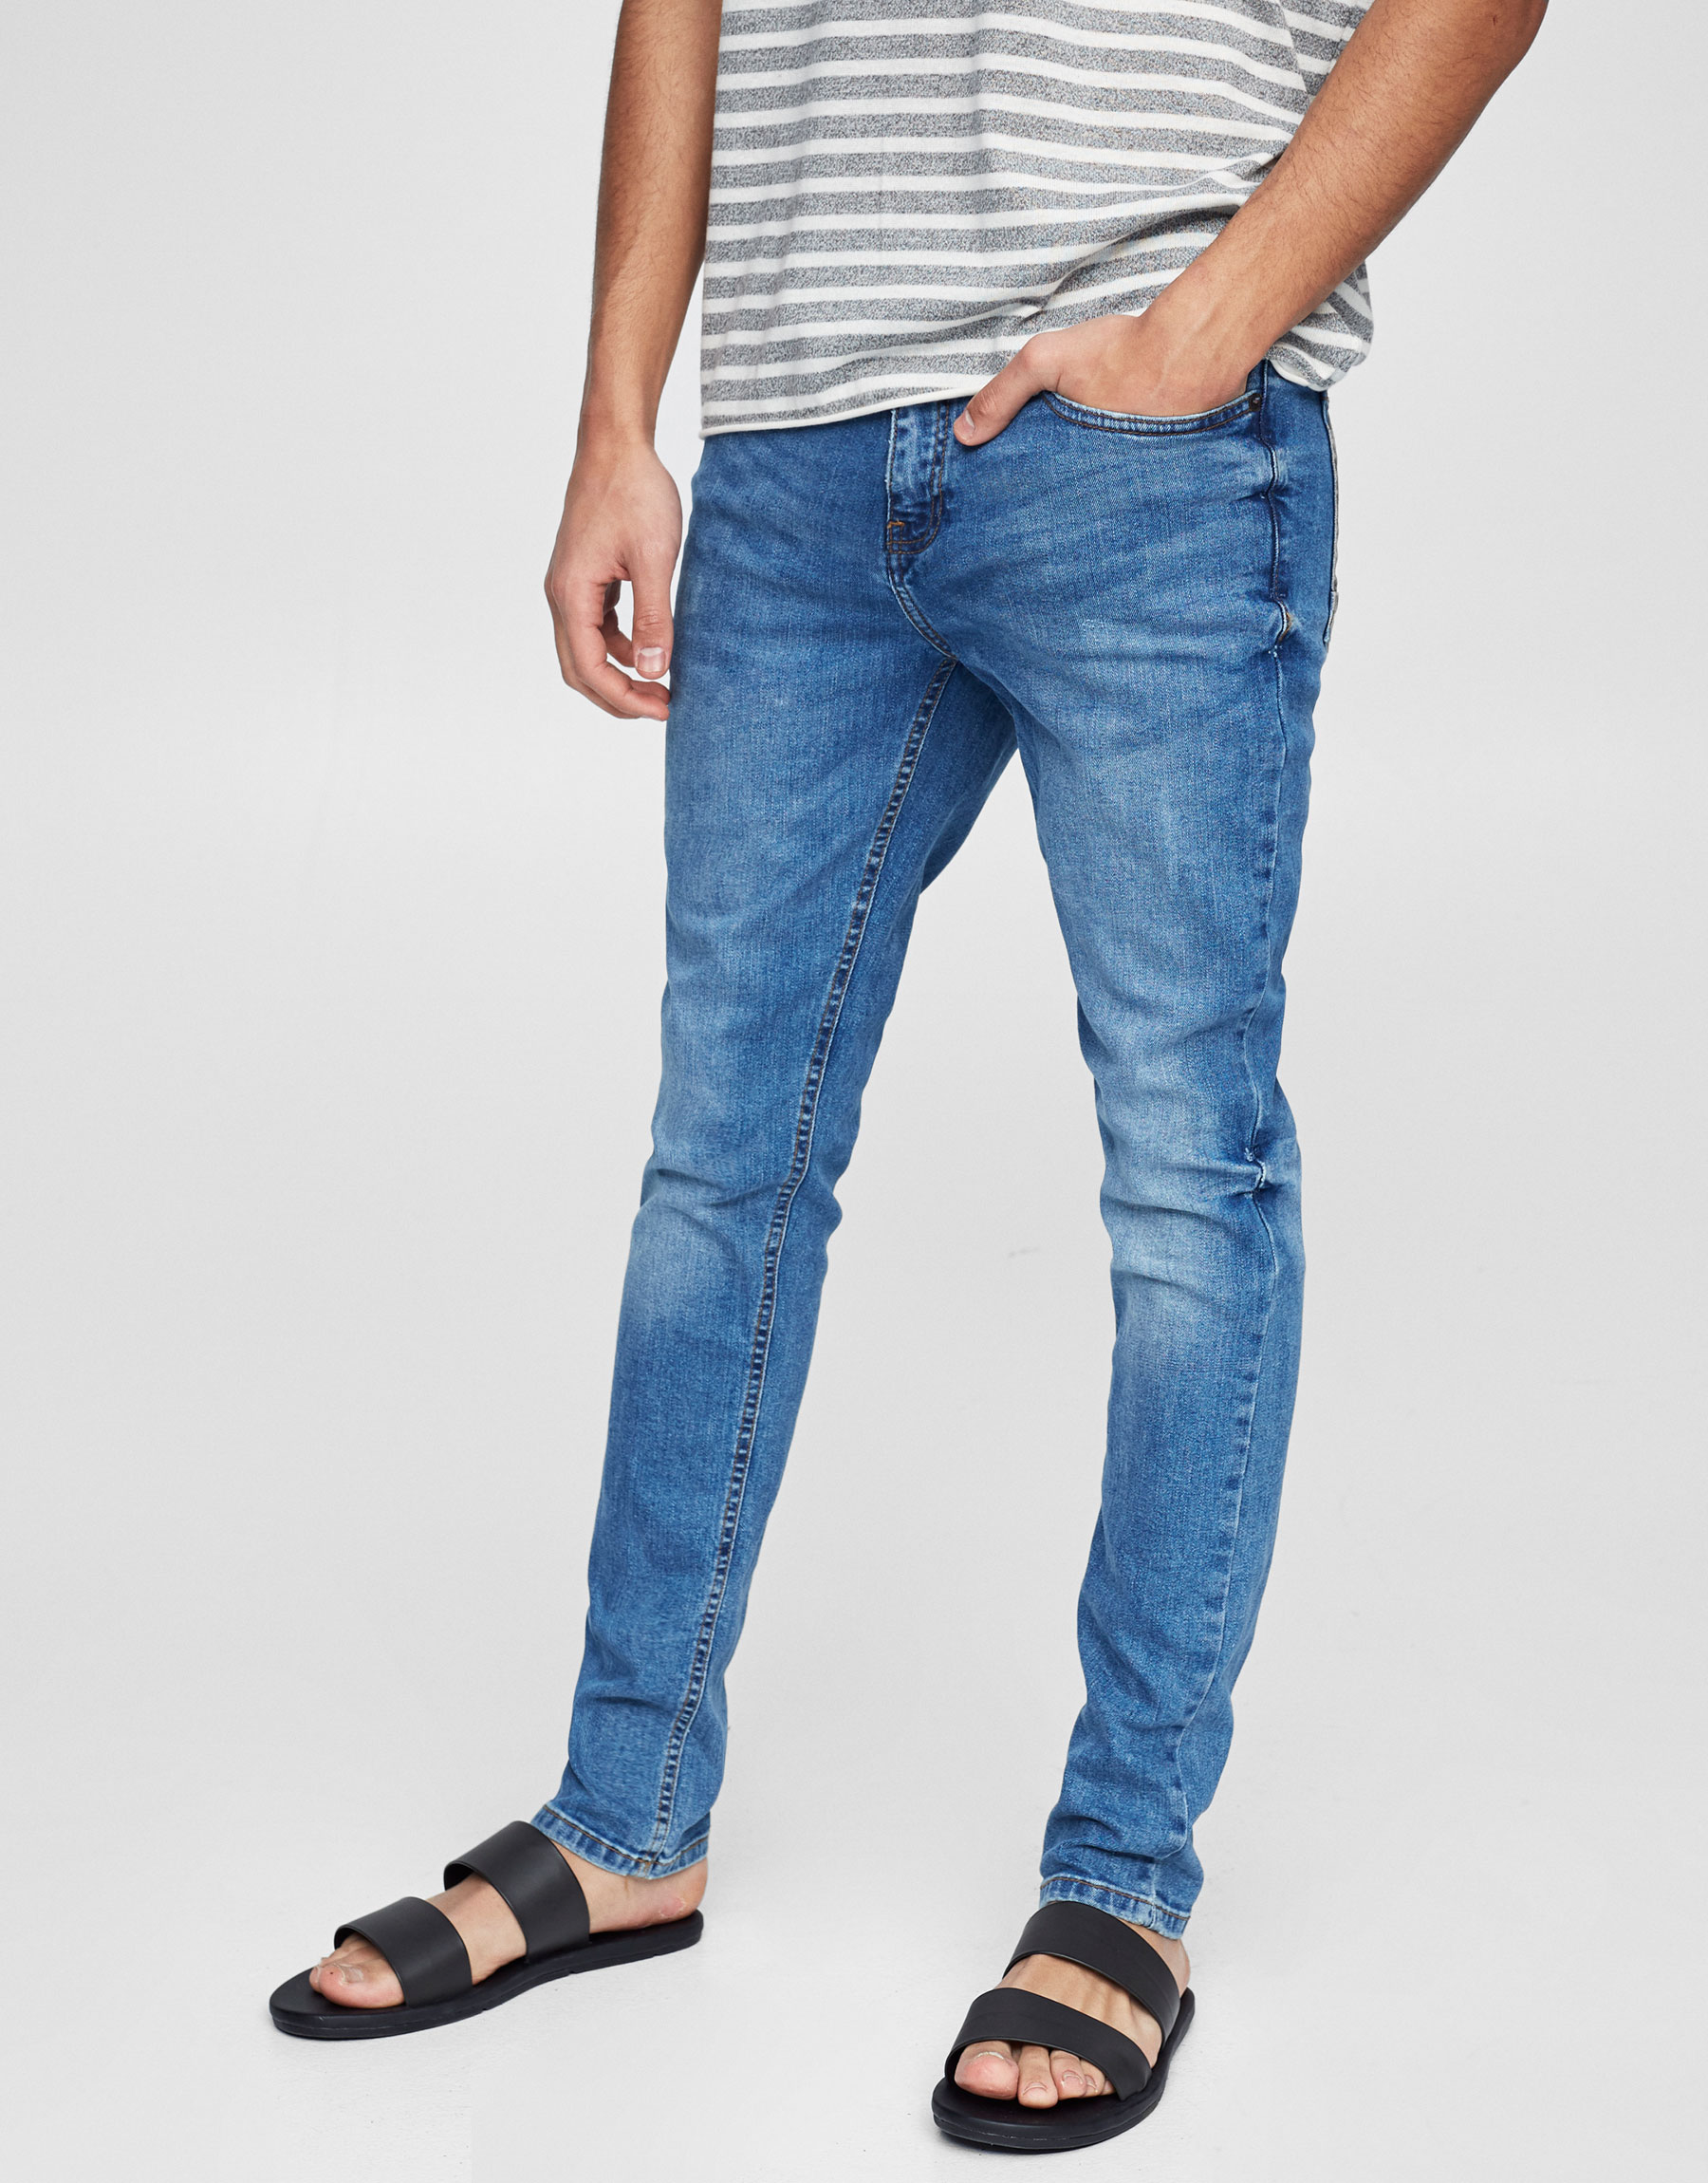 Classic blue skinny fit jeans